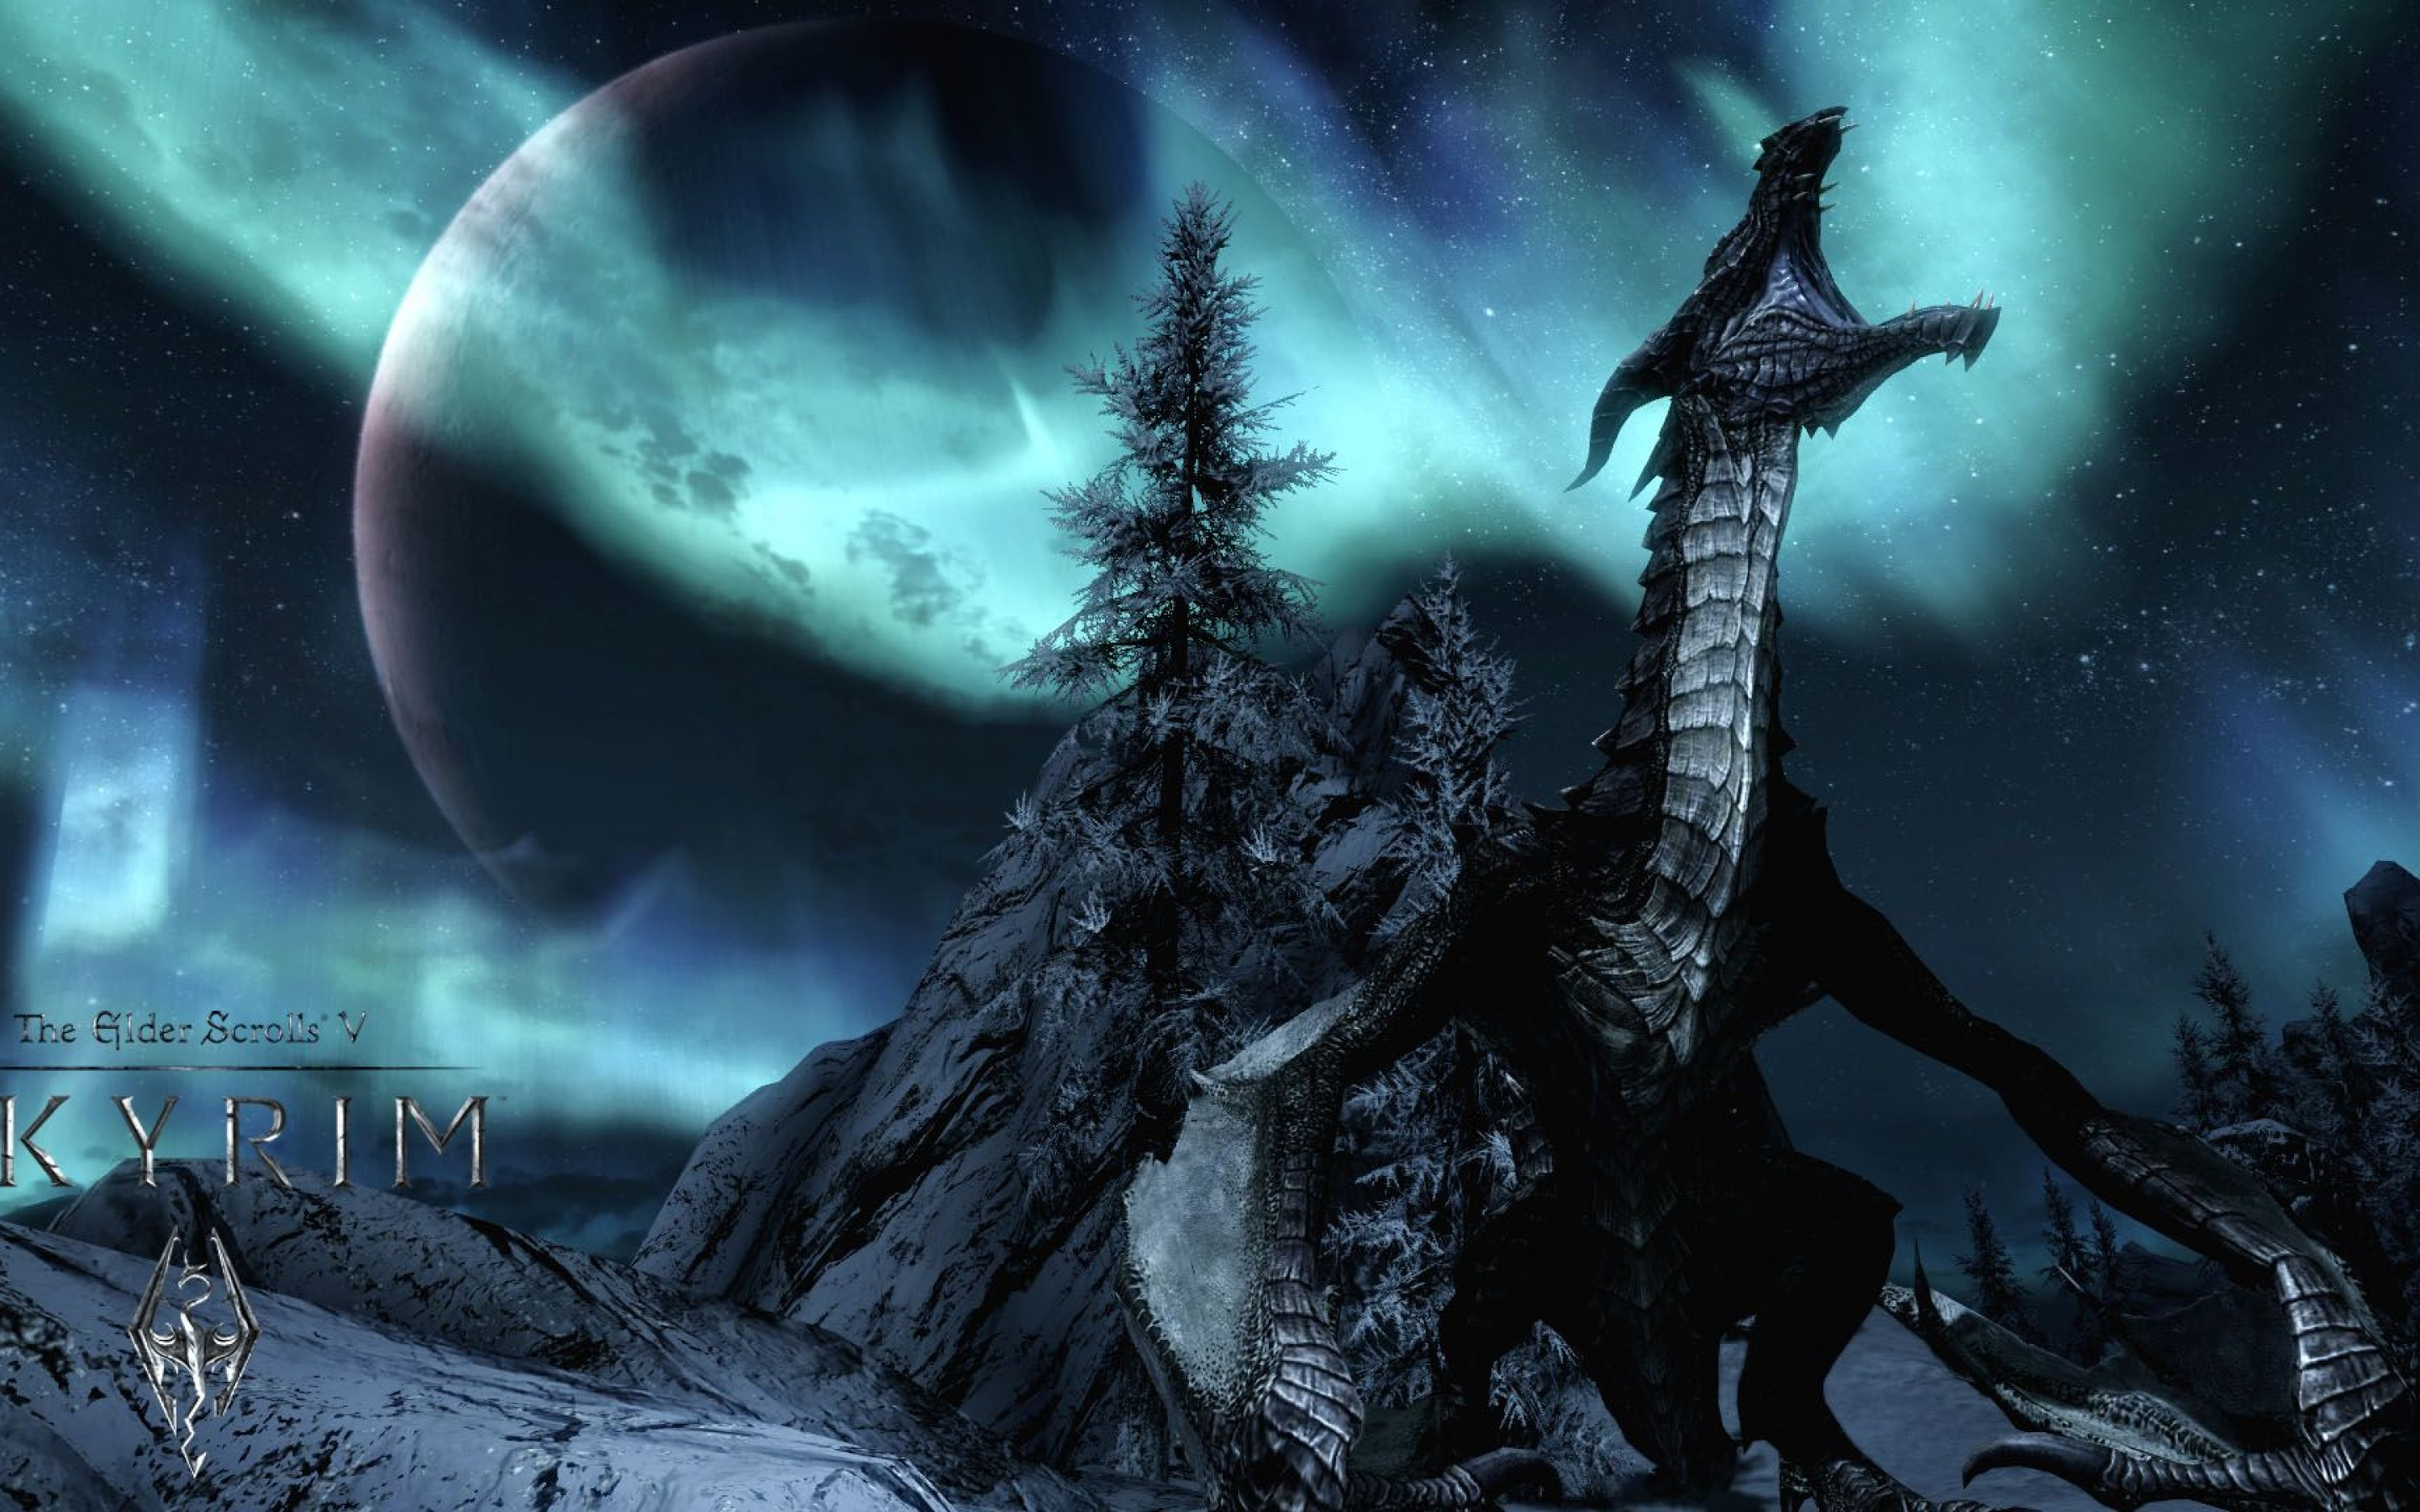 Dragon Skyrim Wallpaper HD Wallpapers Backgrounds Images Art 2880x1800